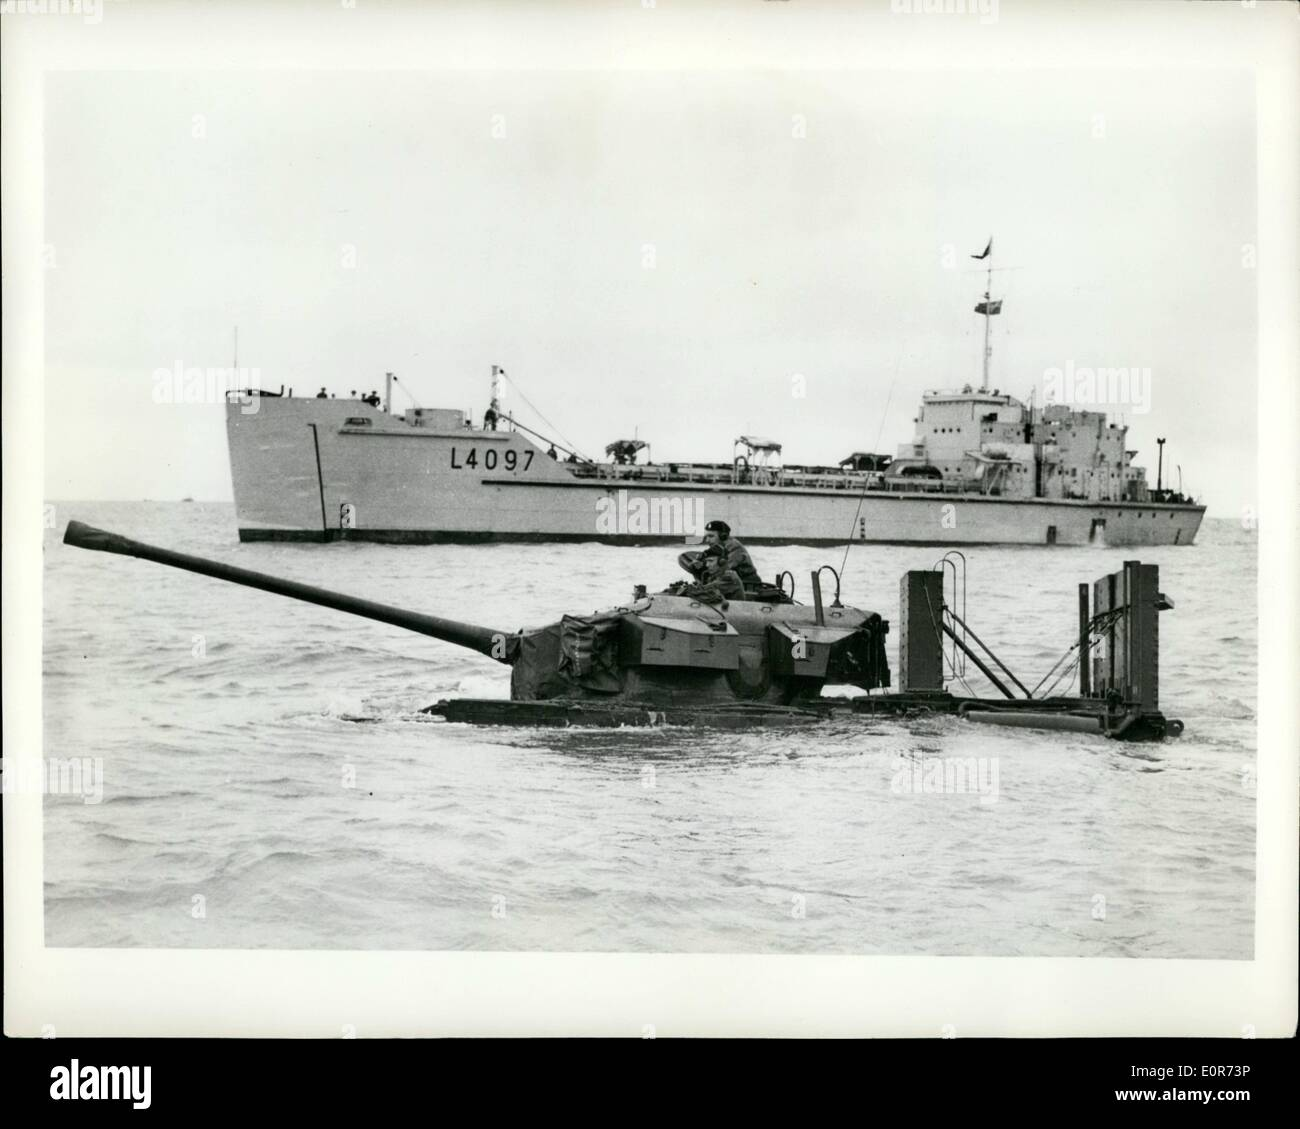 http://c7.alamy.com/comp/E0R73P/jun-06-1958-seagoing-tank-waterproofed-centurion-tanks-took-part-in-E0R73P.jpg